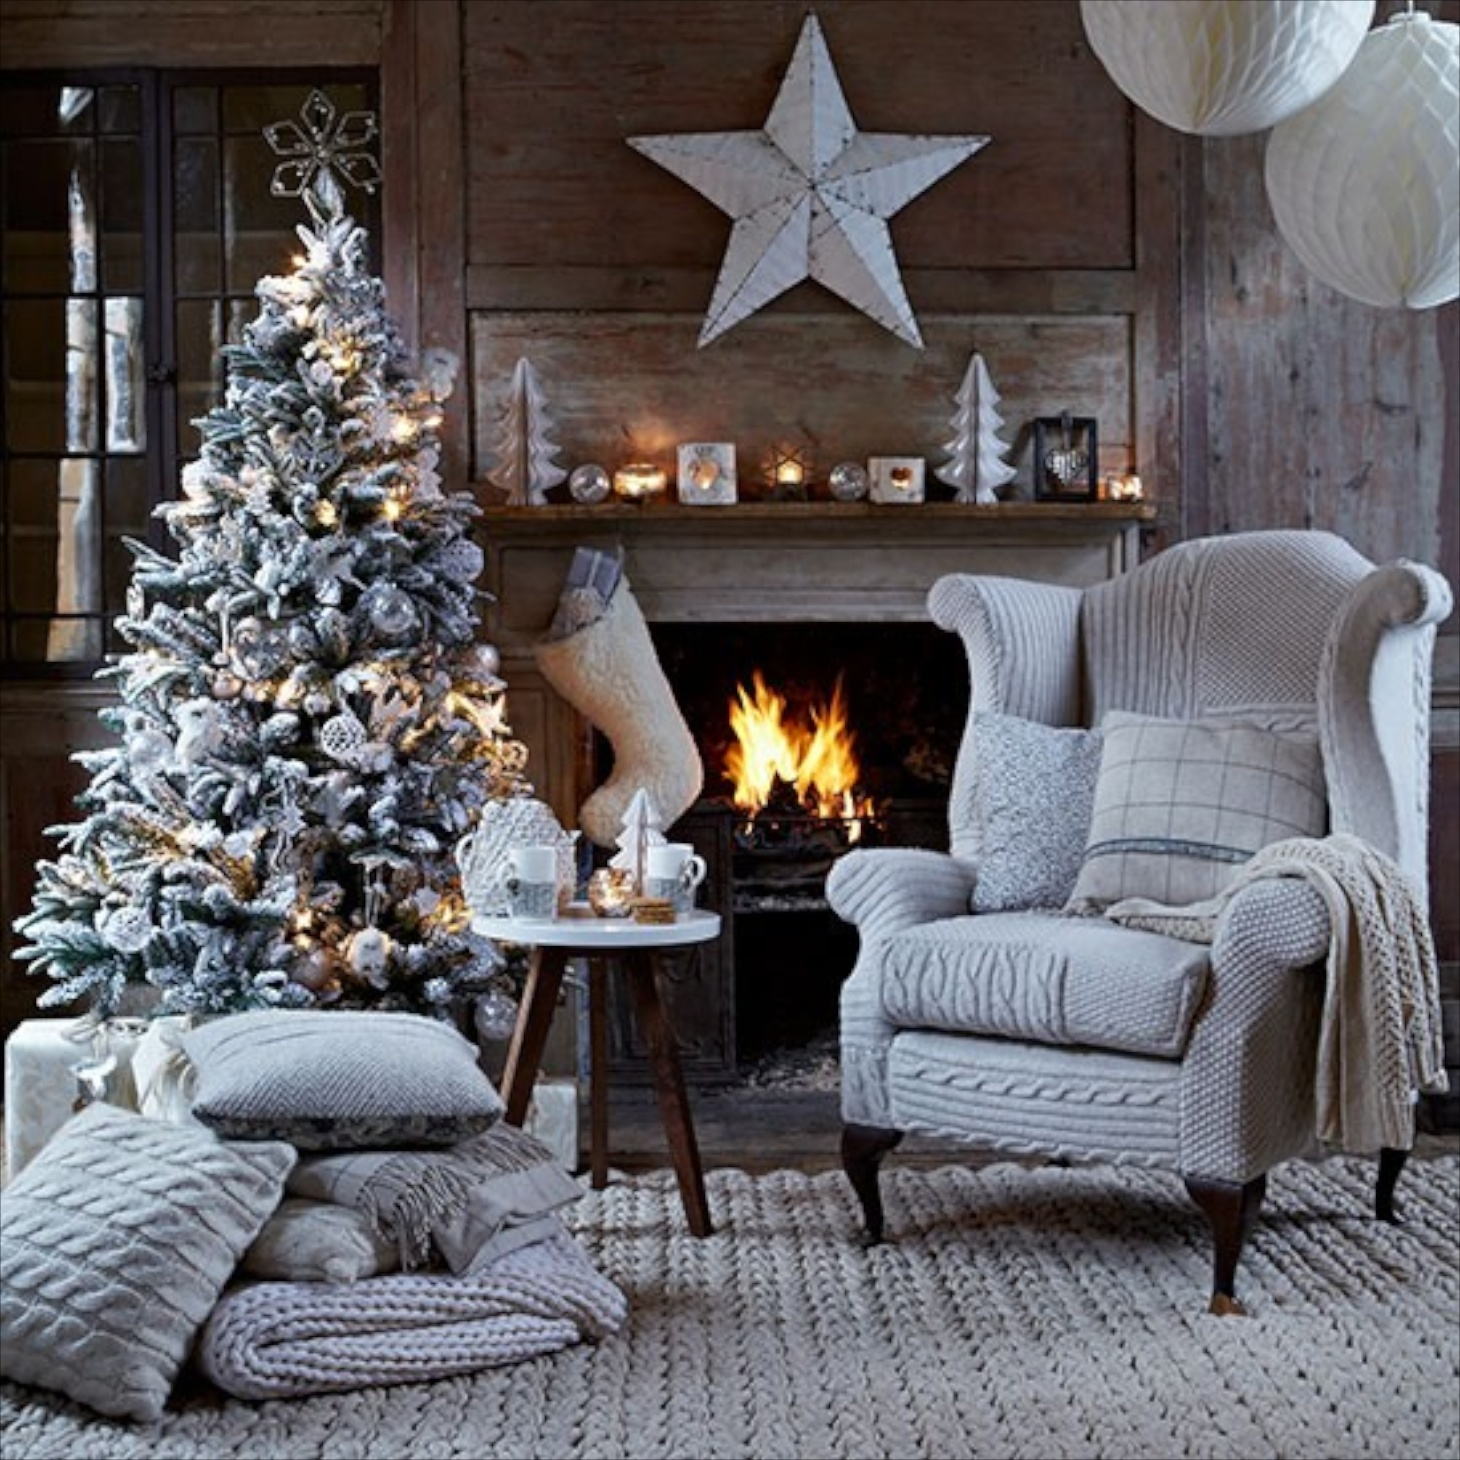 Country home interiors - 03_christmas Living Room With Knitted Chair Cover Country Homes Interiors Housetohome Co_ Uk__whg